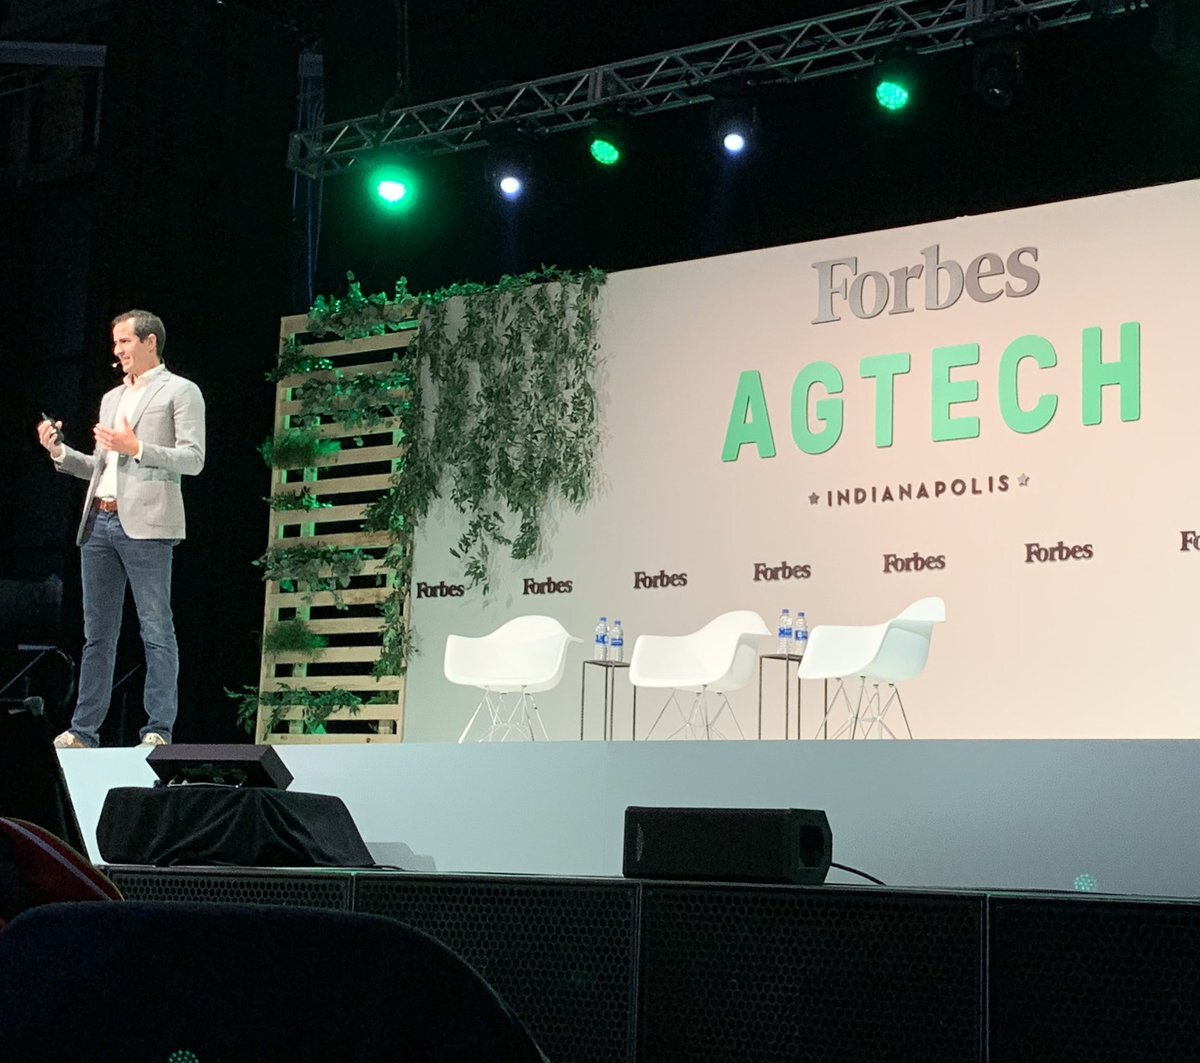 Forbes AgTech conference